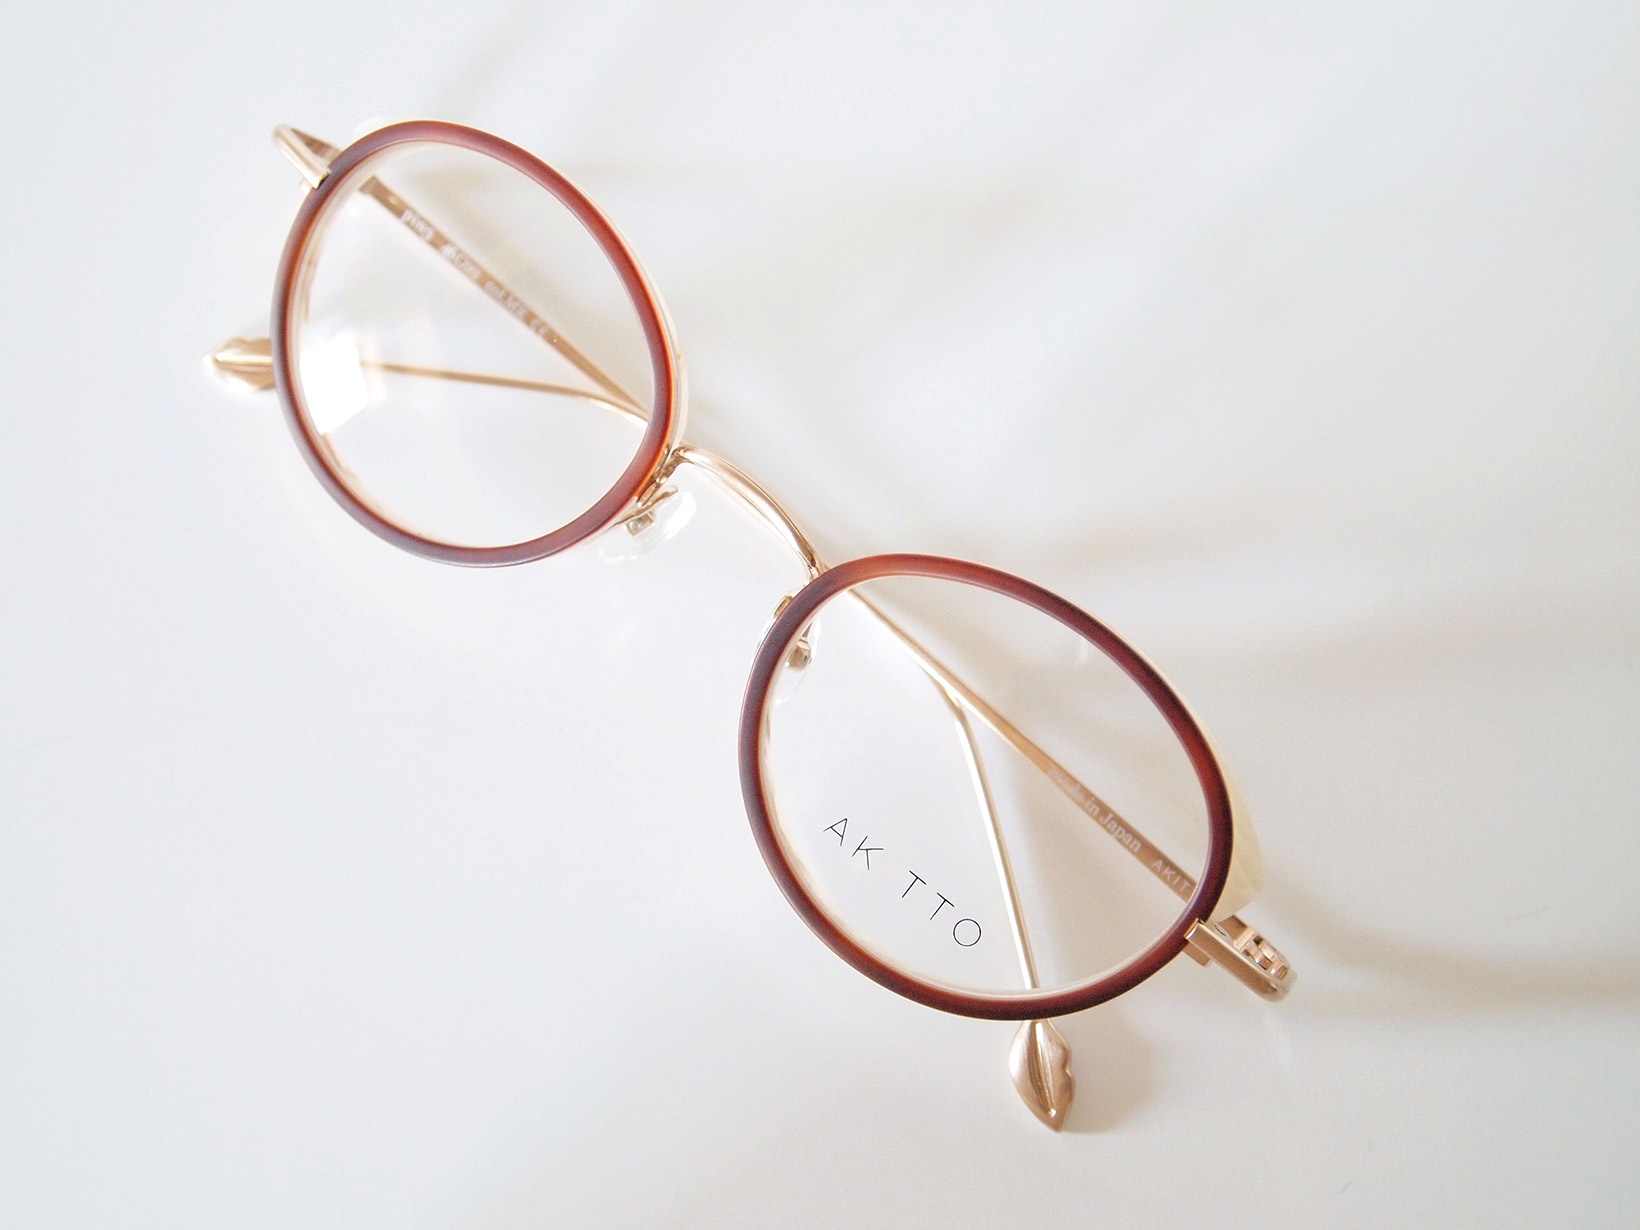 AKITTO 2018-1st pin3 color|MK size:46□22 material:titanium+acetate price:42,000-(+tax)